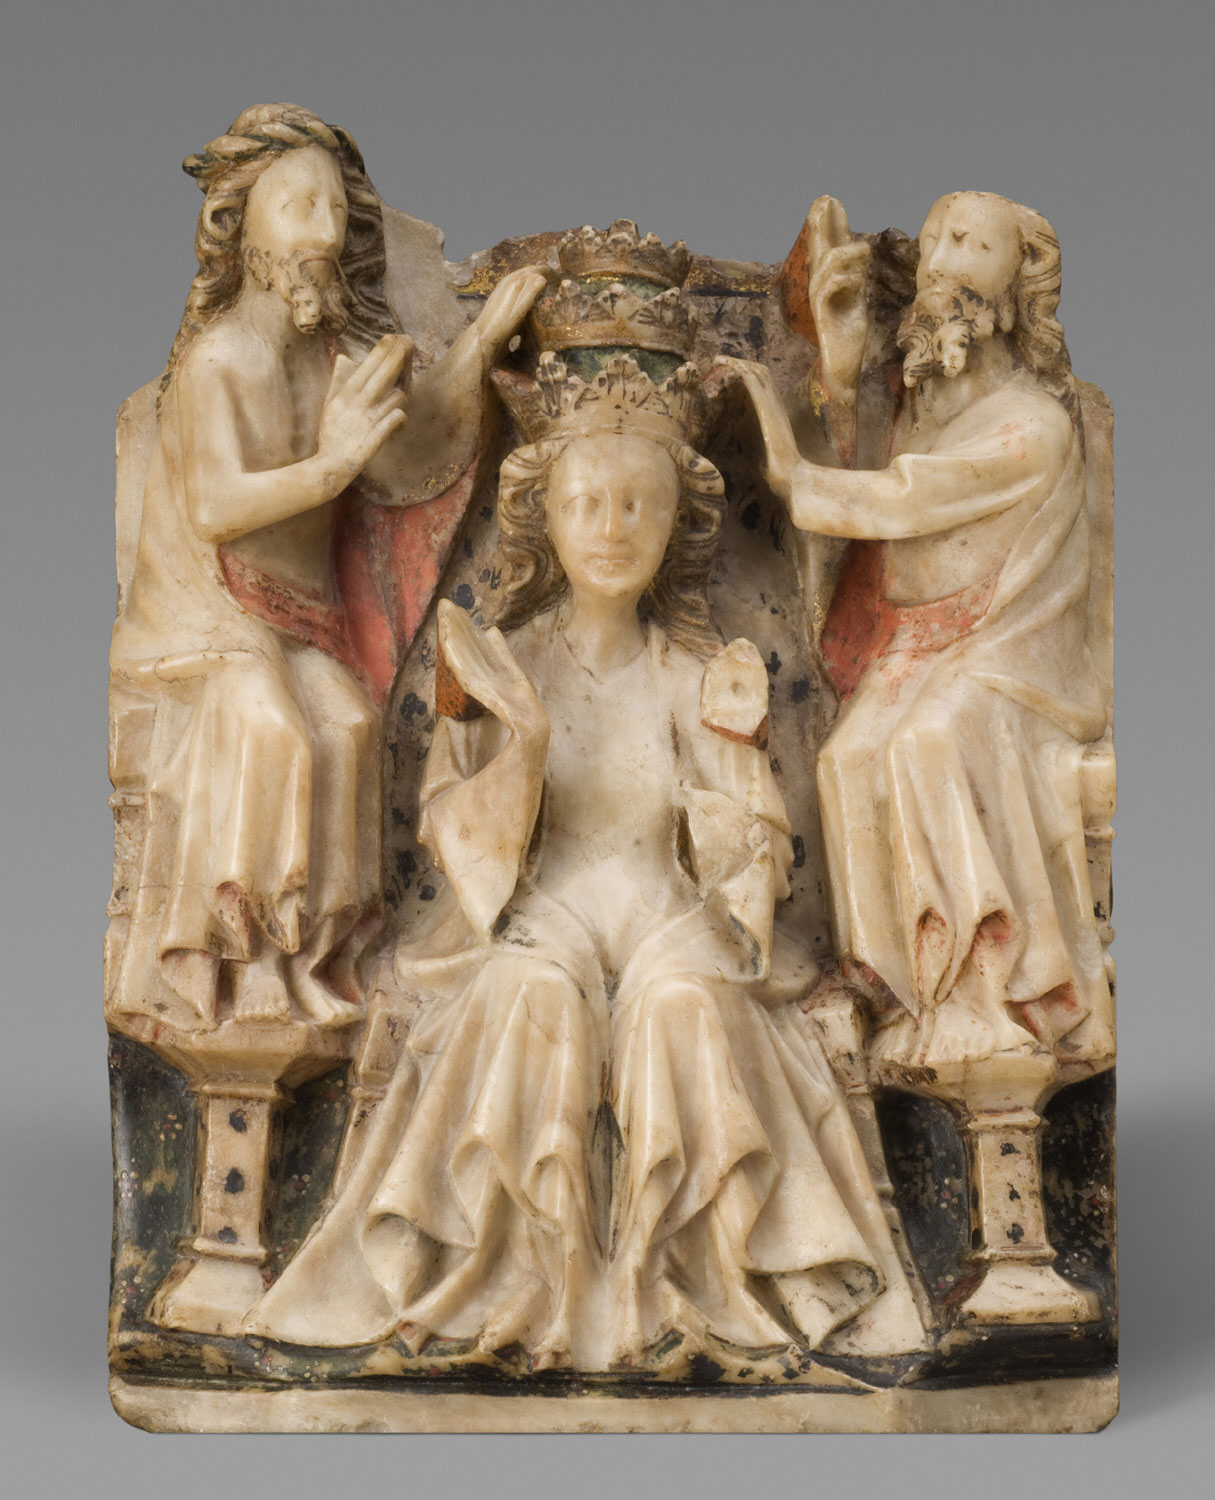 The Enthroned Virgin Crowned by Jesus and God the Father